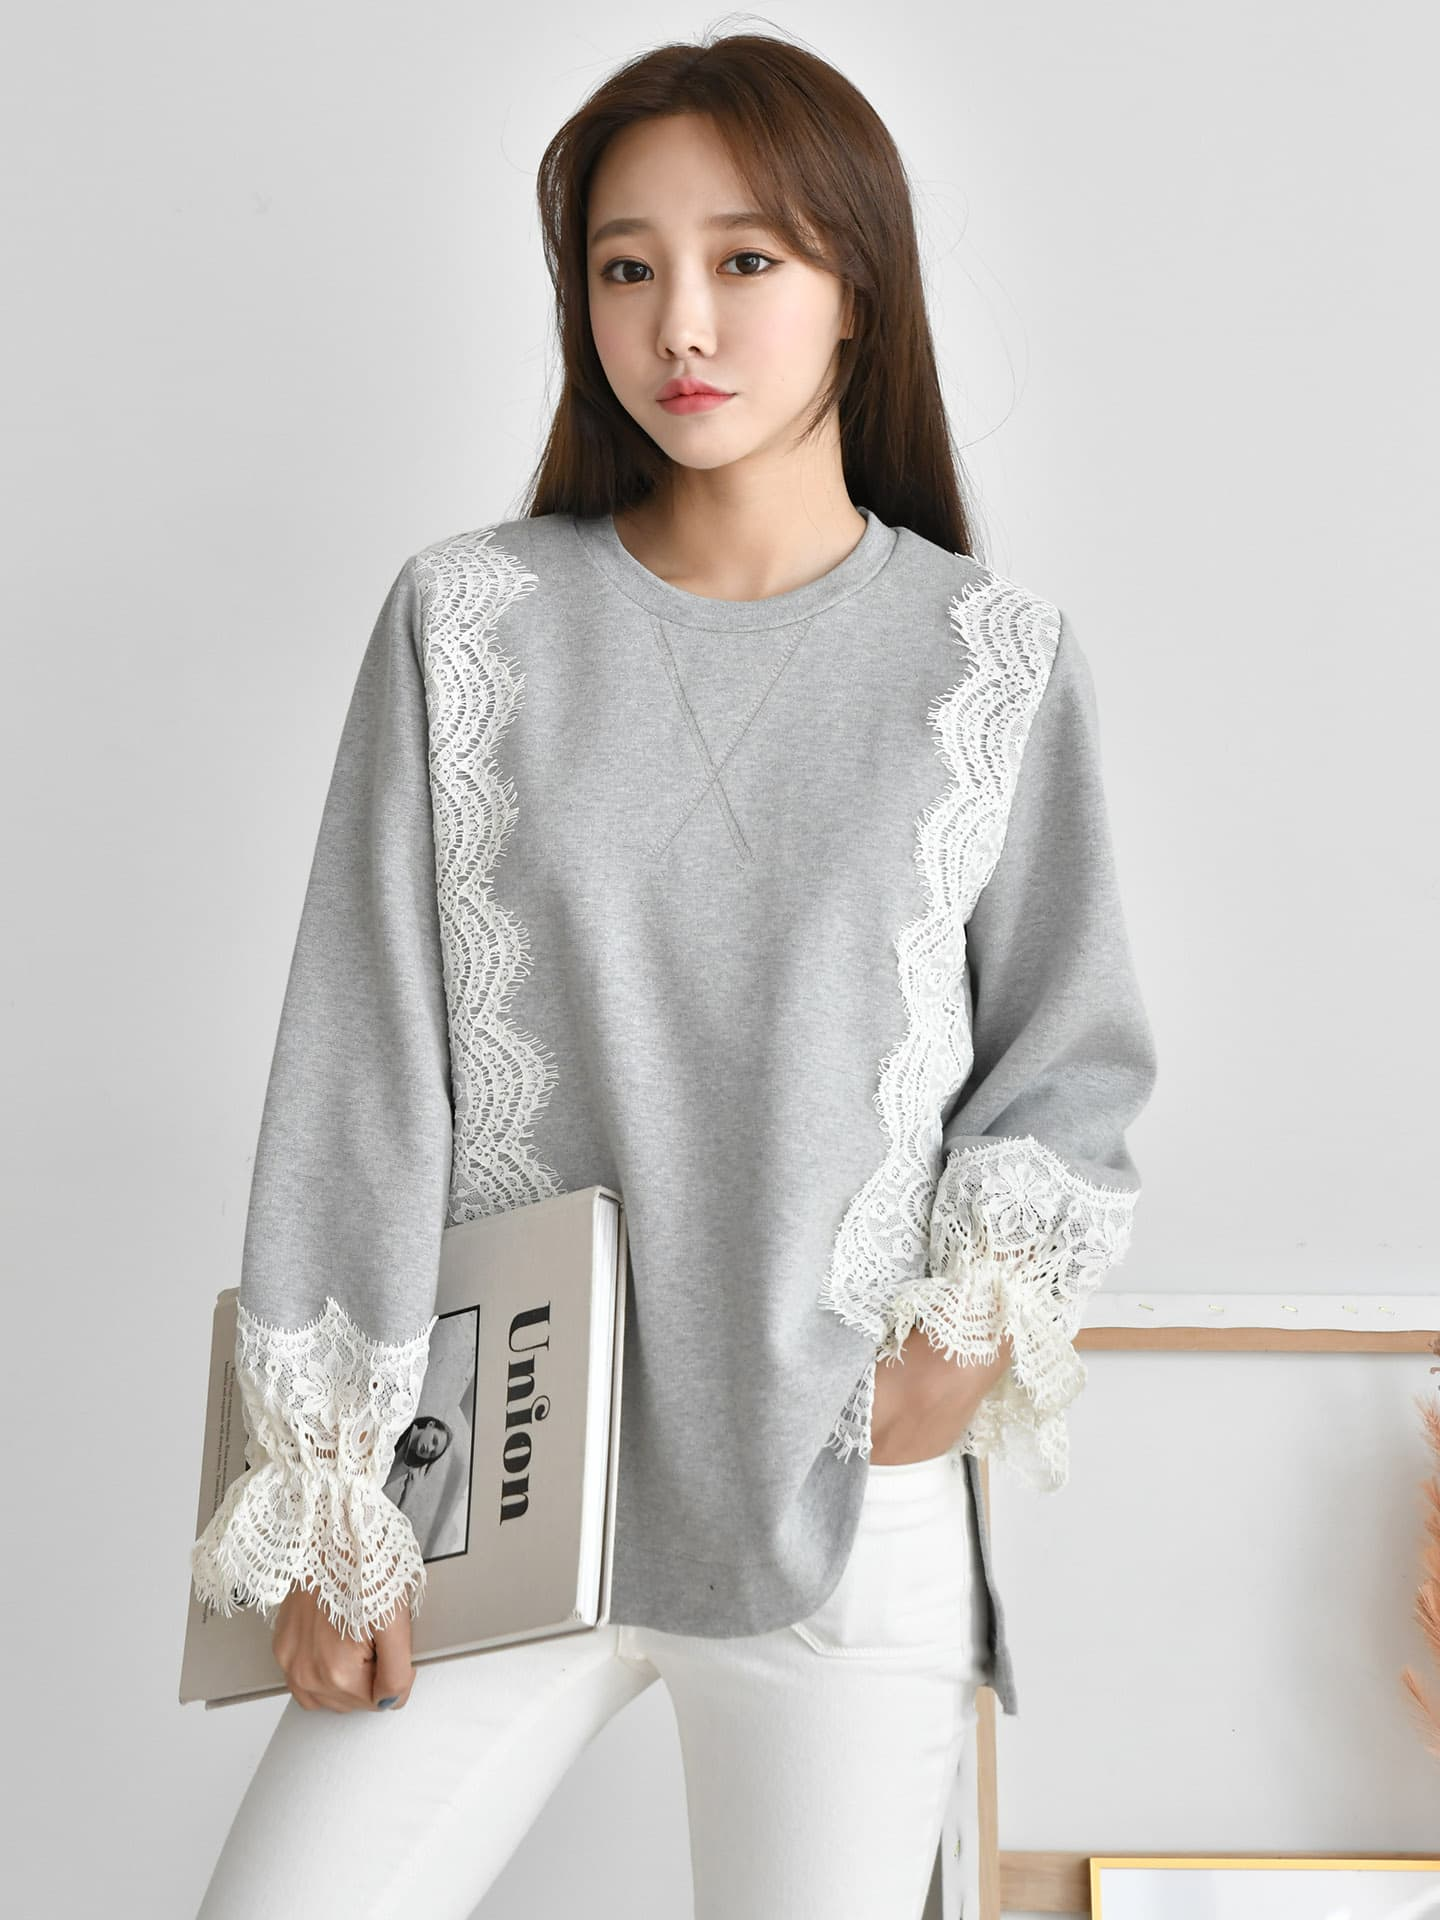 Top_T_Shirt_ lace sleeve_ Cotton_ Boat neck_ Adorable